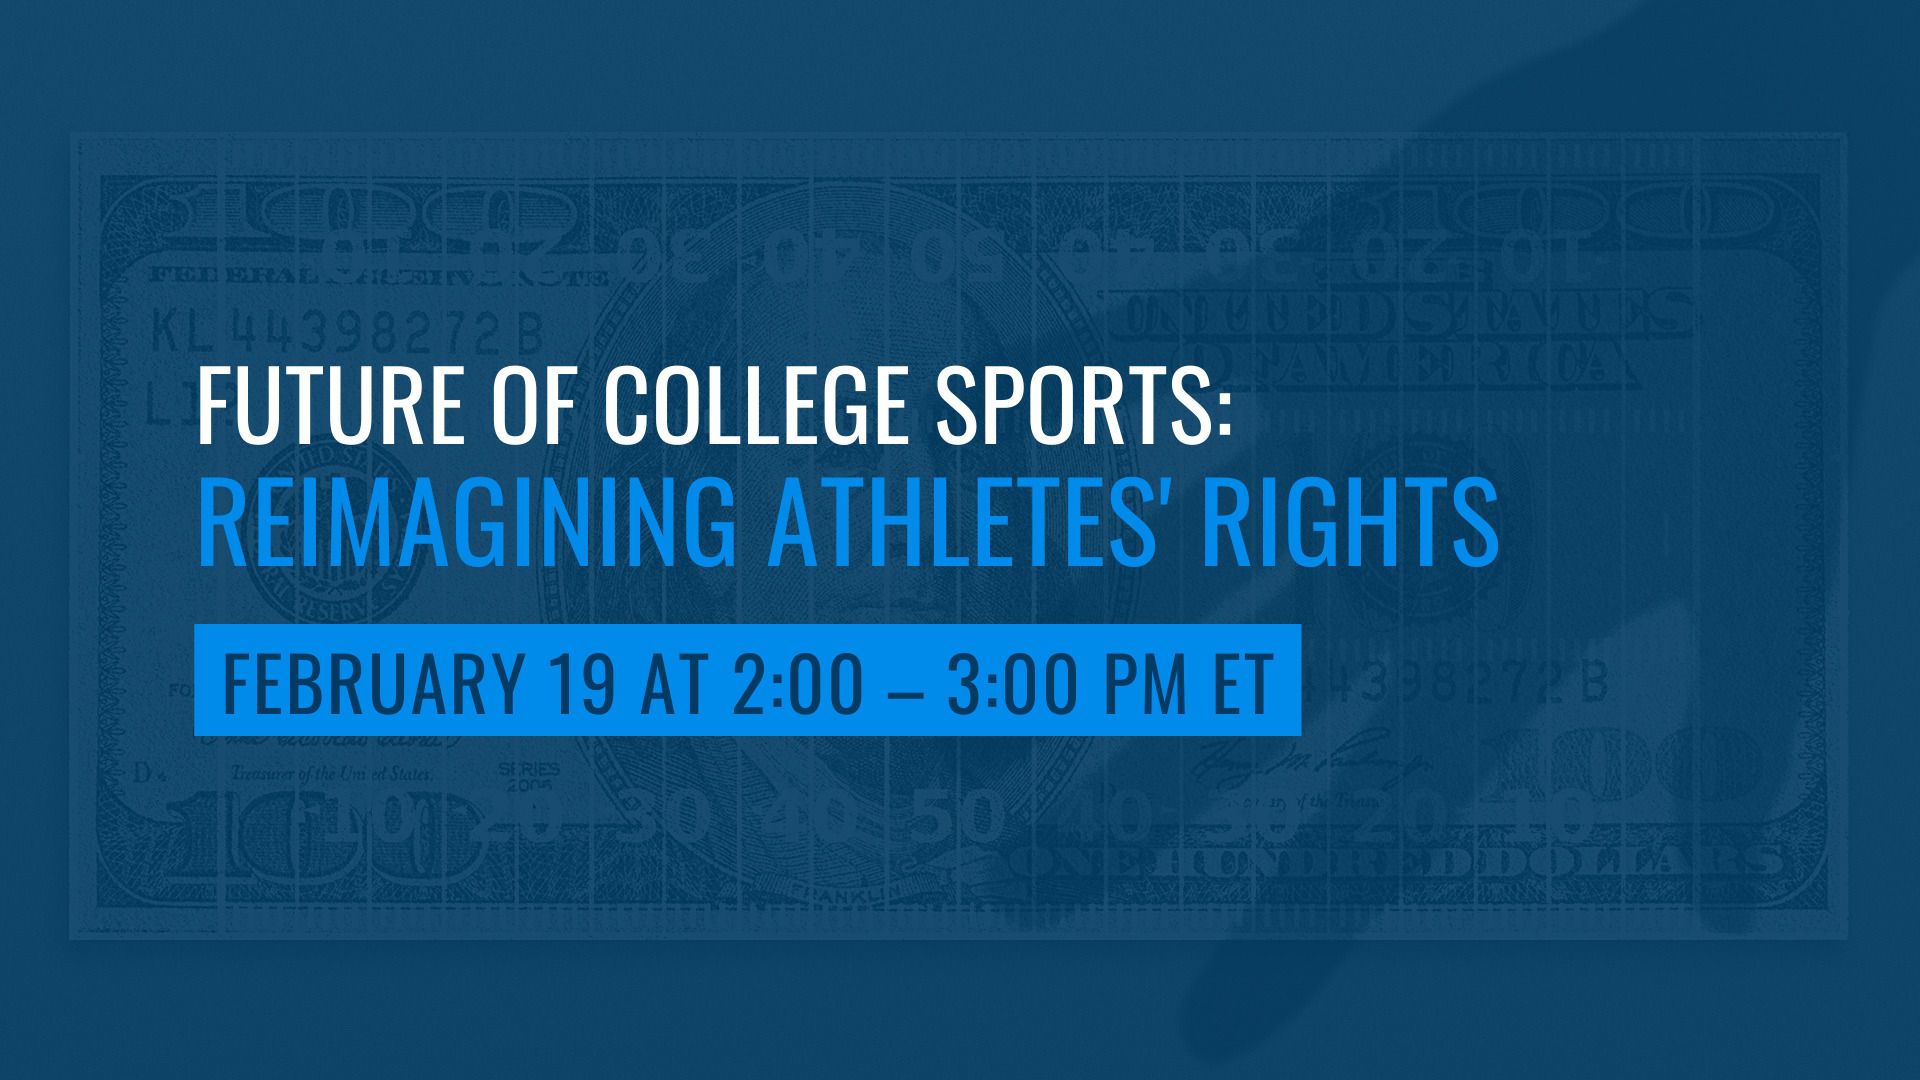 Future of College Sports: Reimagining Athletes' Rights